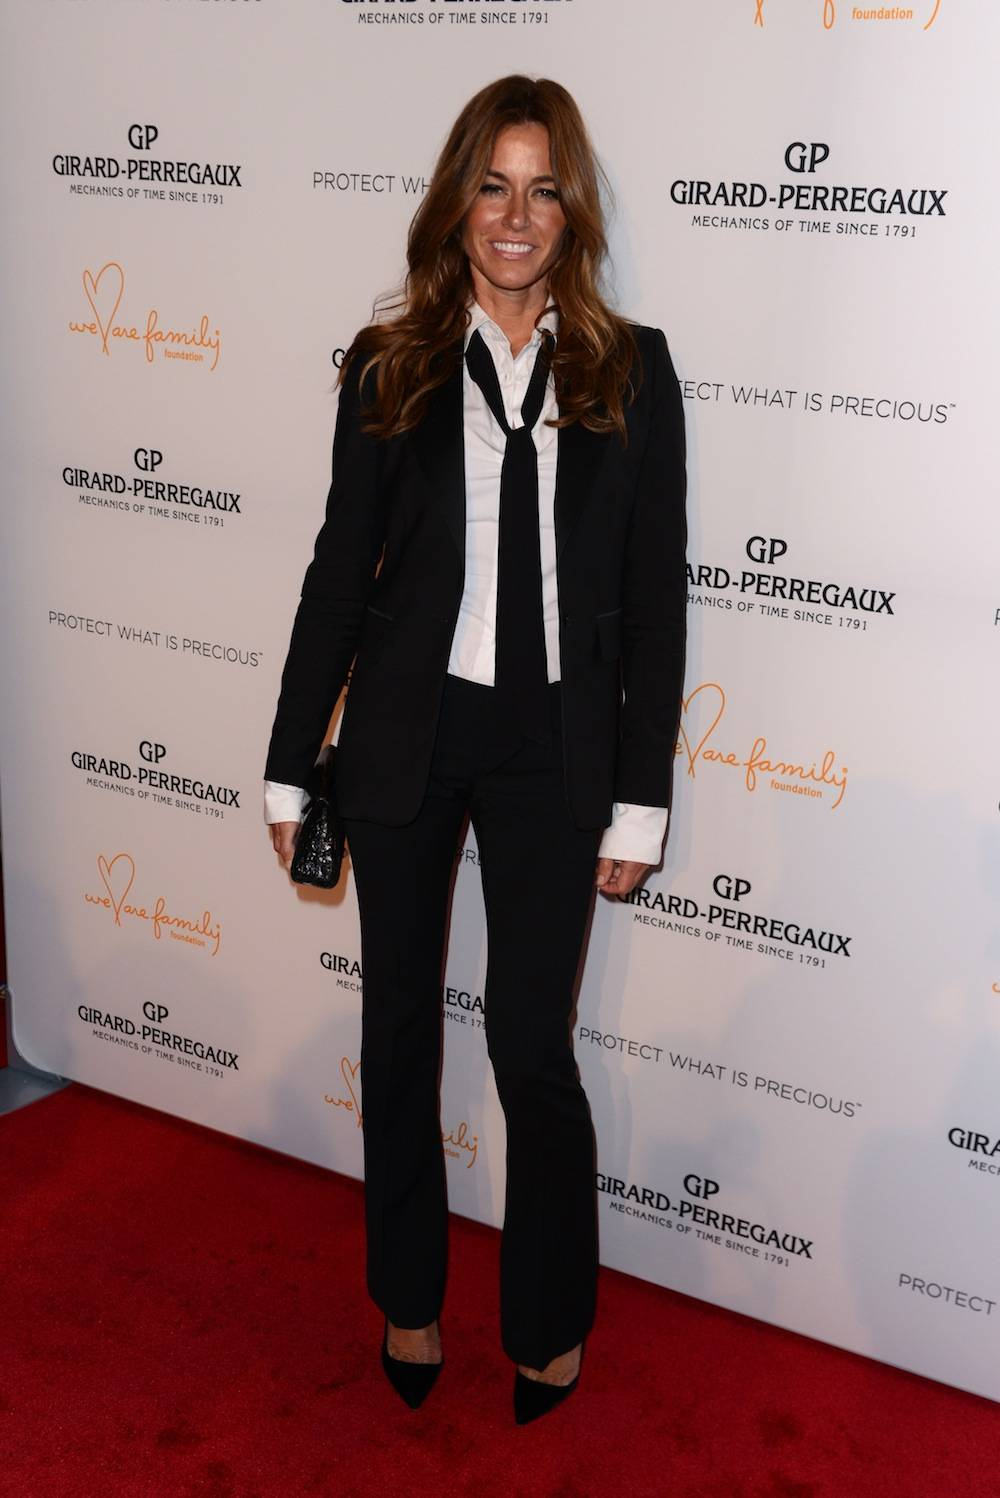 Girard-Perregaux Launches Mission Of Mermaids Watch With Susan And David Rockefeller To Benefit Nile Rodgers' We Are Family Foundation